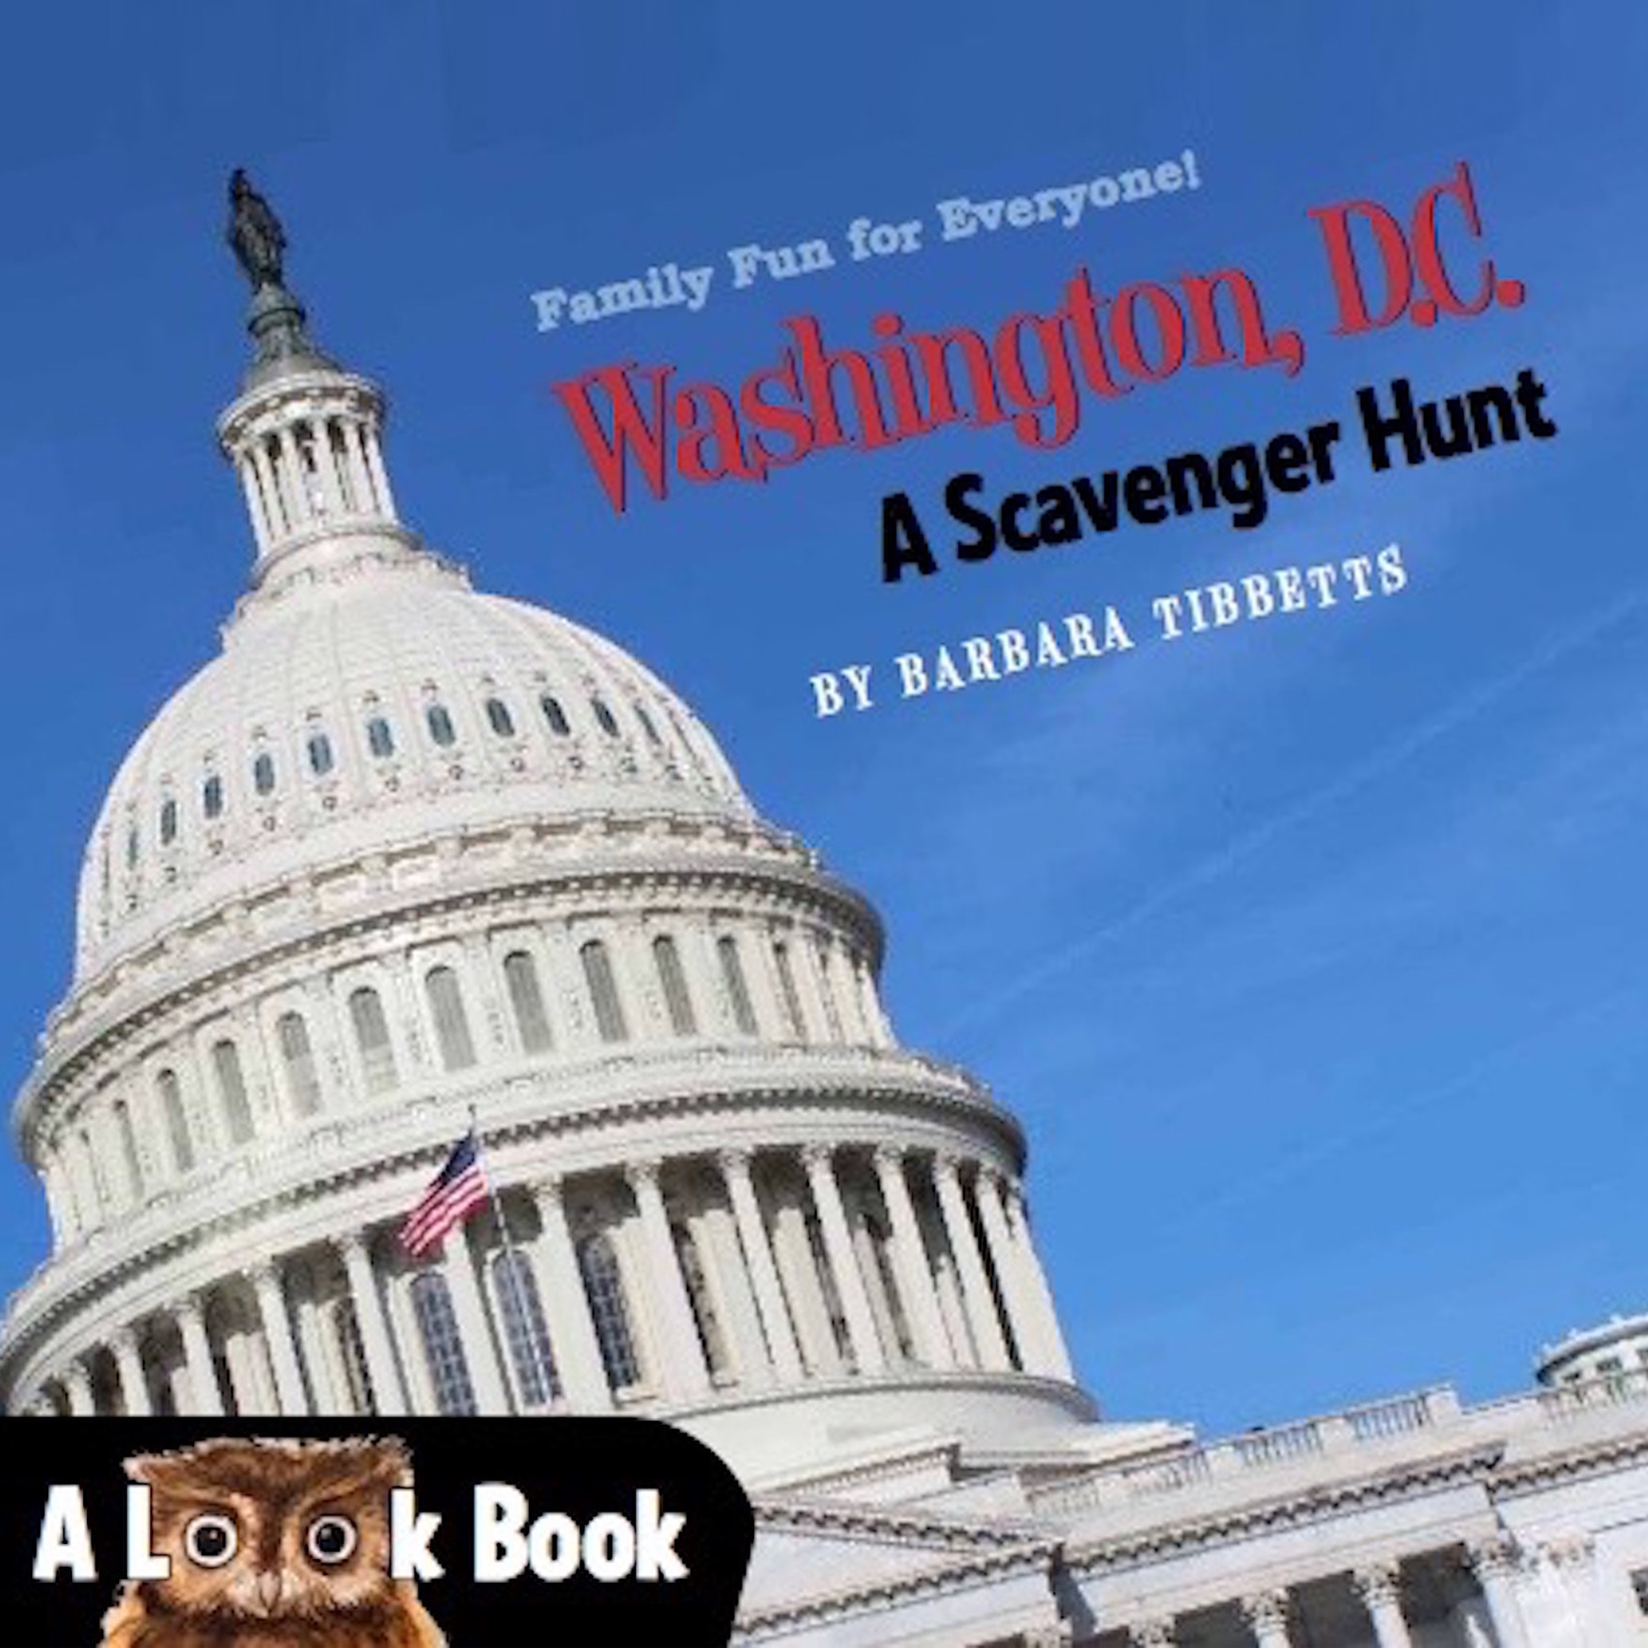 Washington, D.C. – Look Book Scavenger Hunt